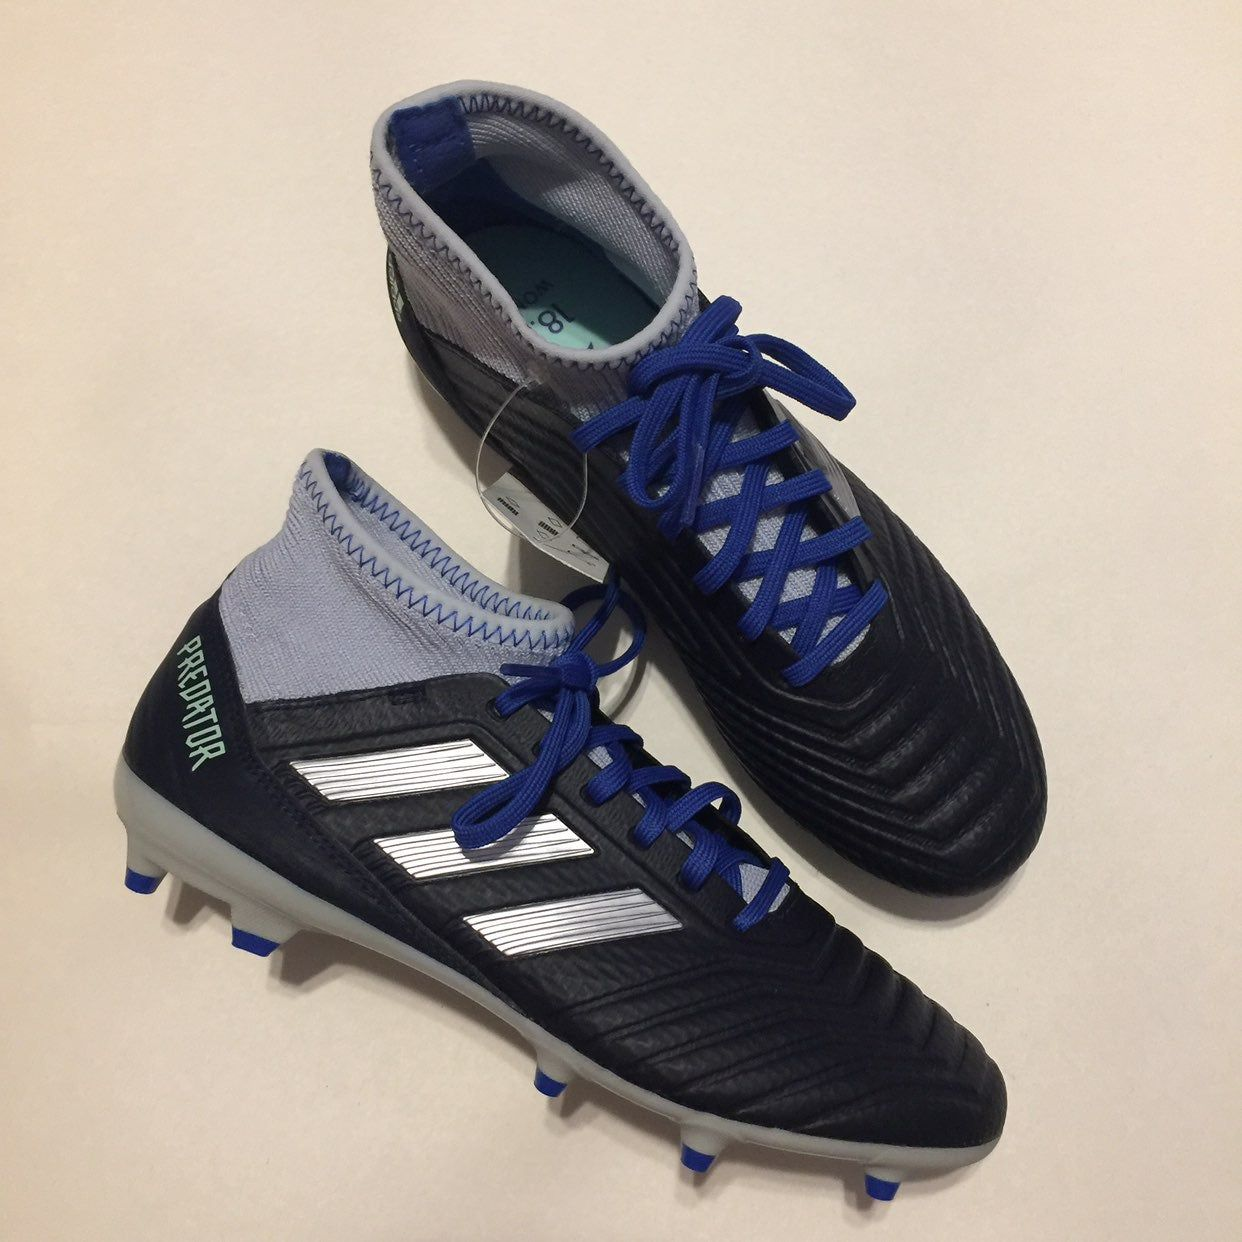 Brand new without box silver and blue adidas cleats